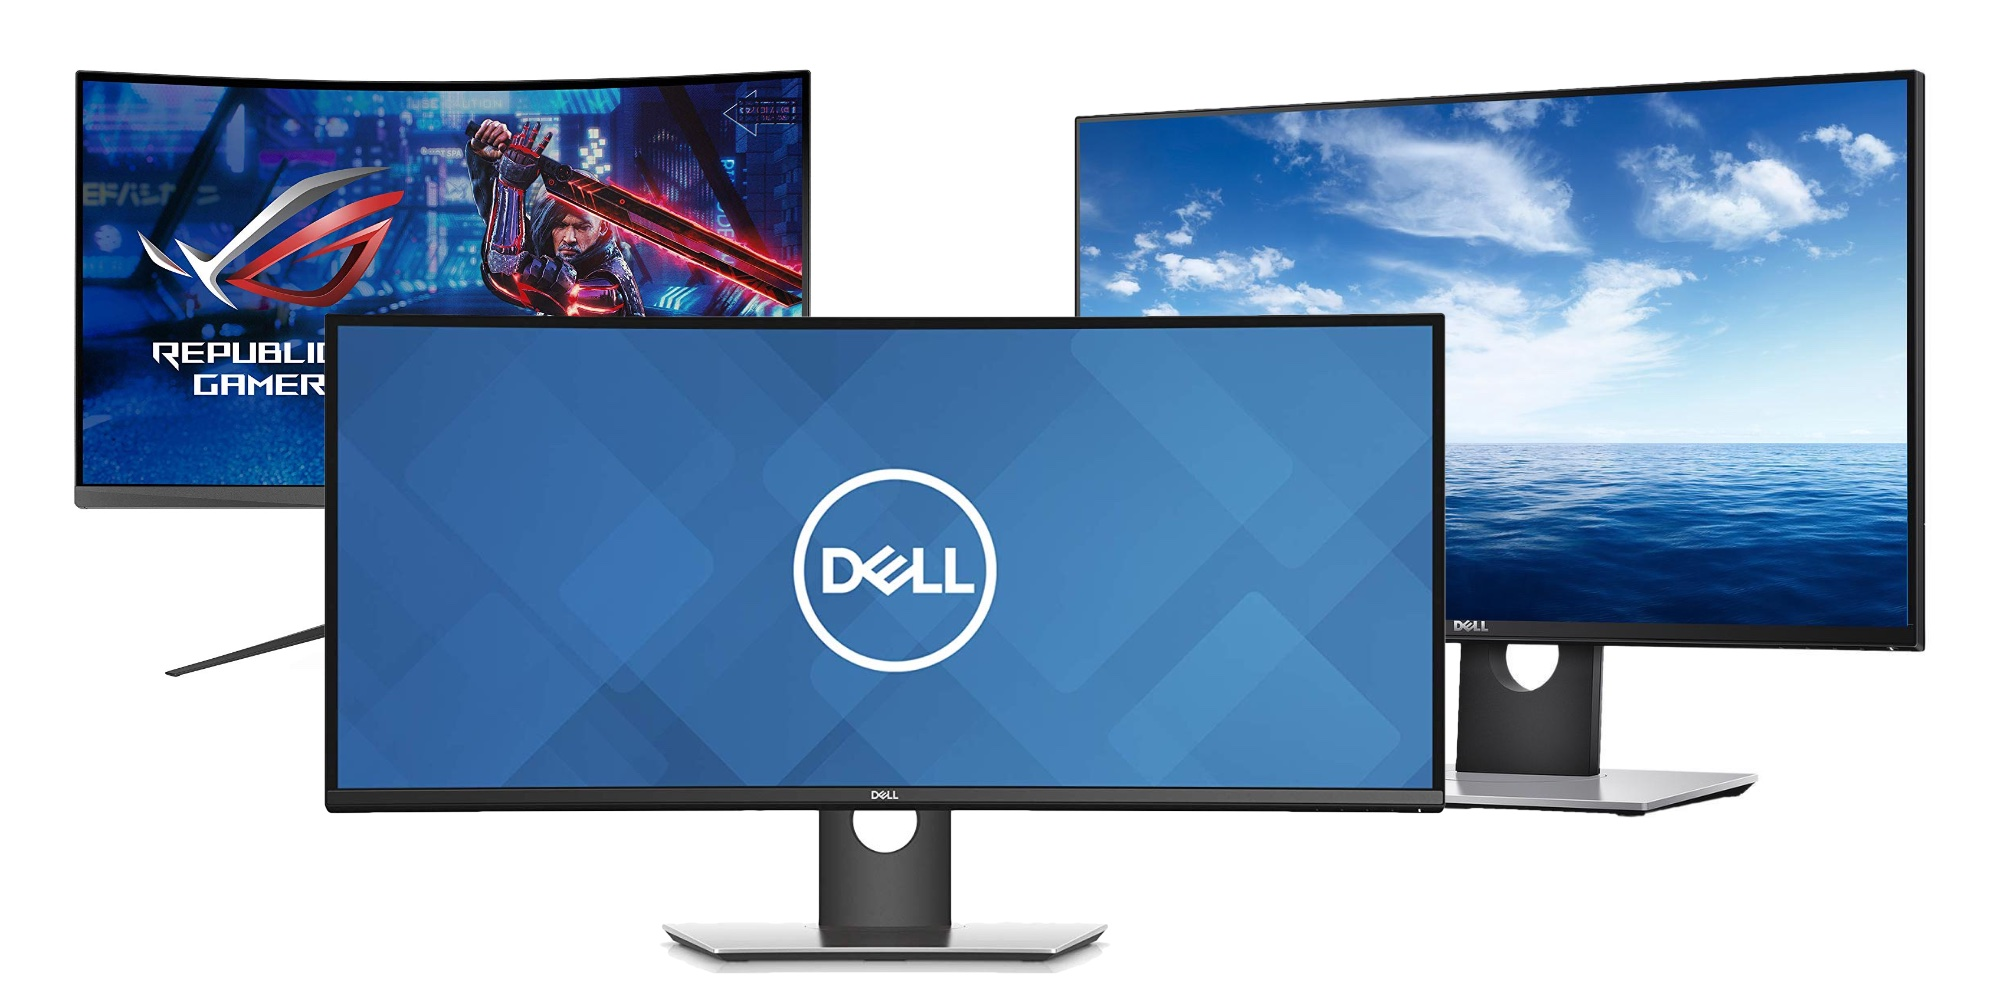 Equip your workstation with a new monitor: Dell 27-inch 1440p $470 (22% off), more from $380